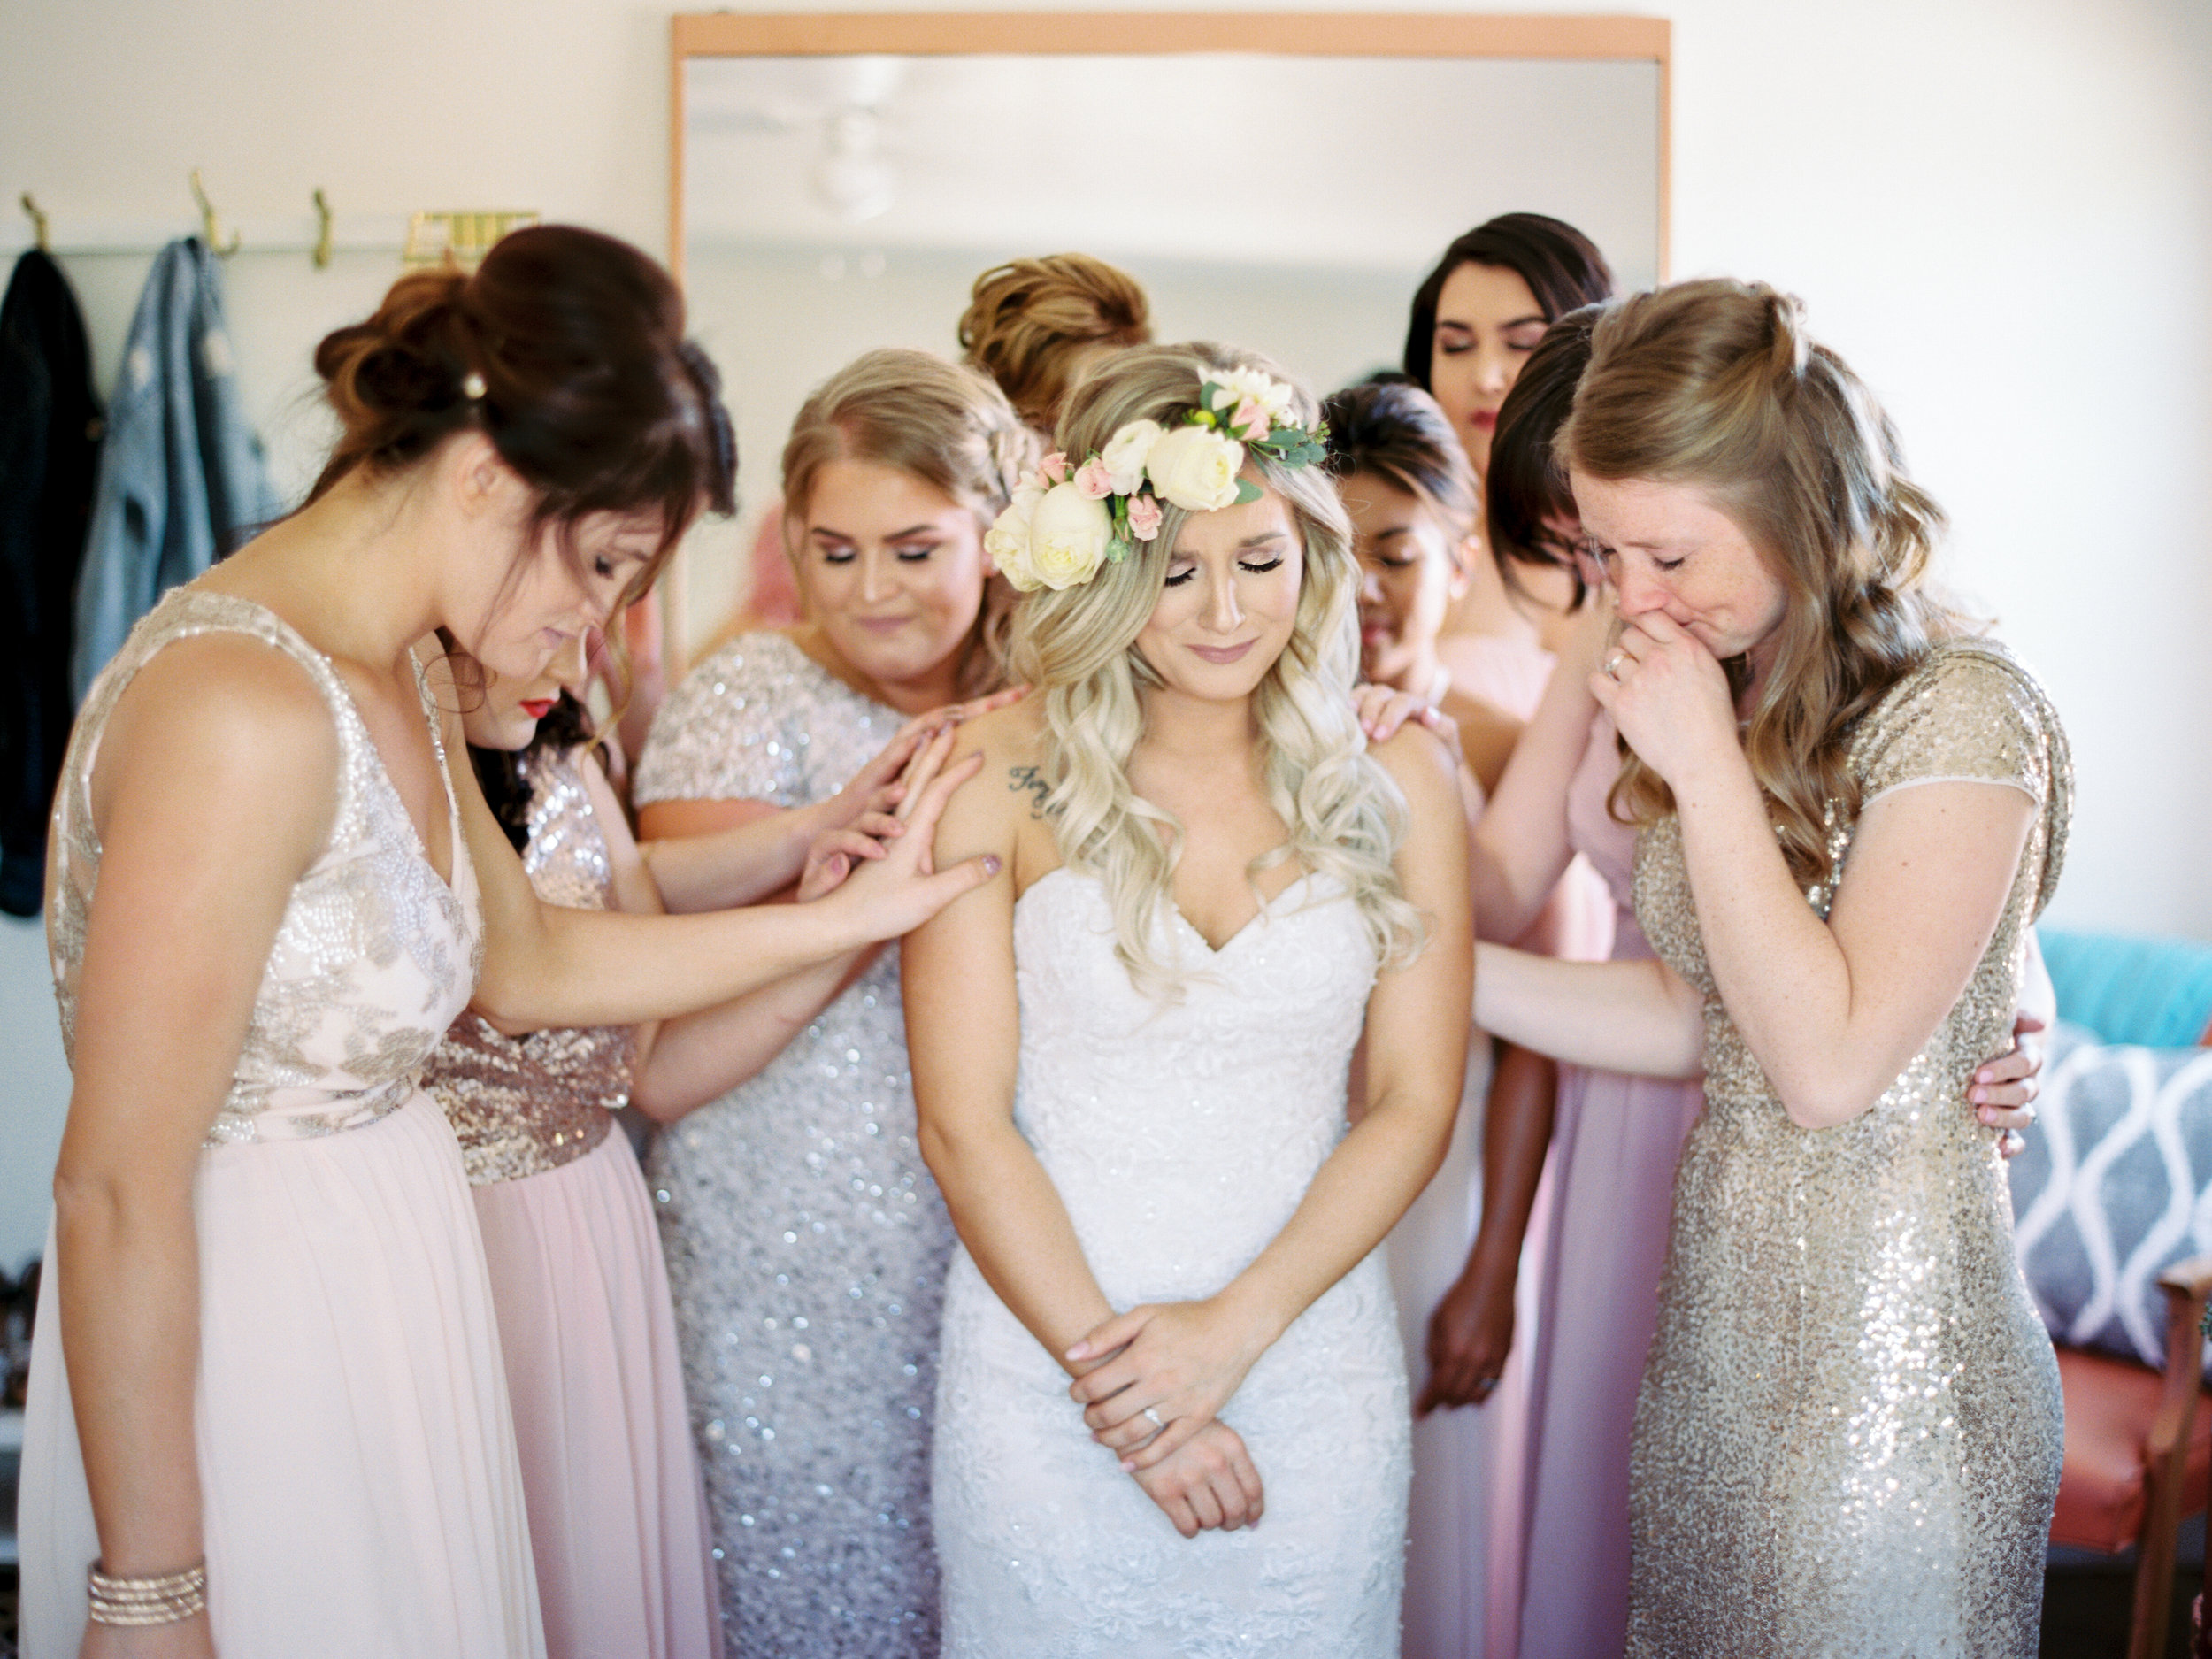 A beautiful moment of prayer with my sisters, mom and bridesmaids